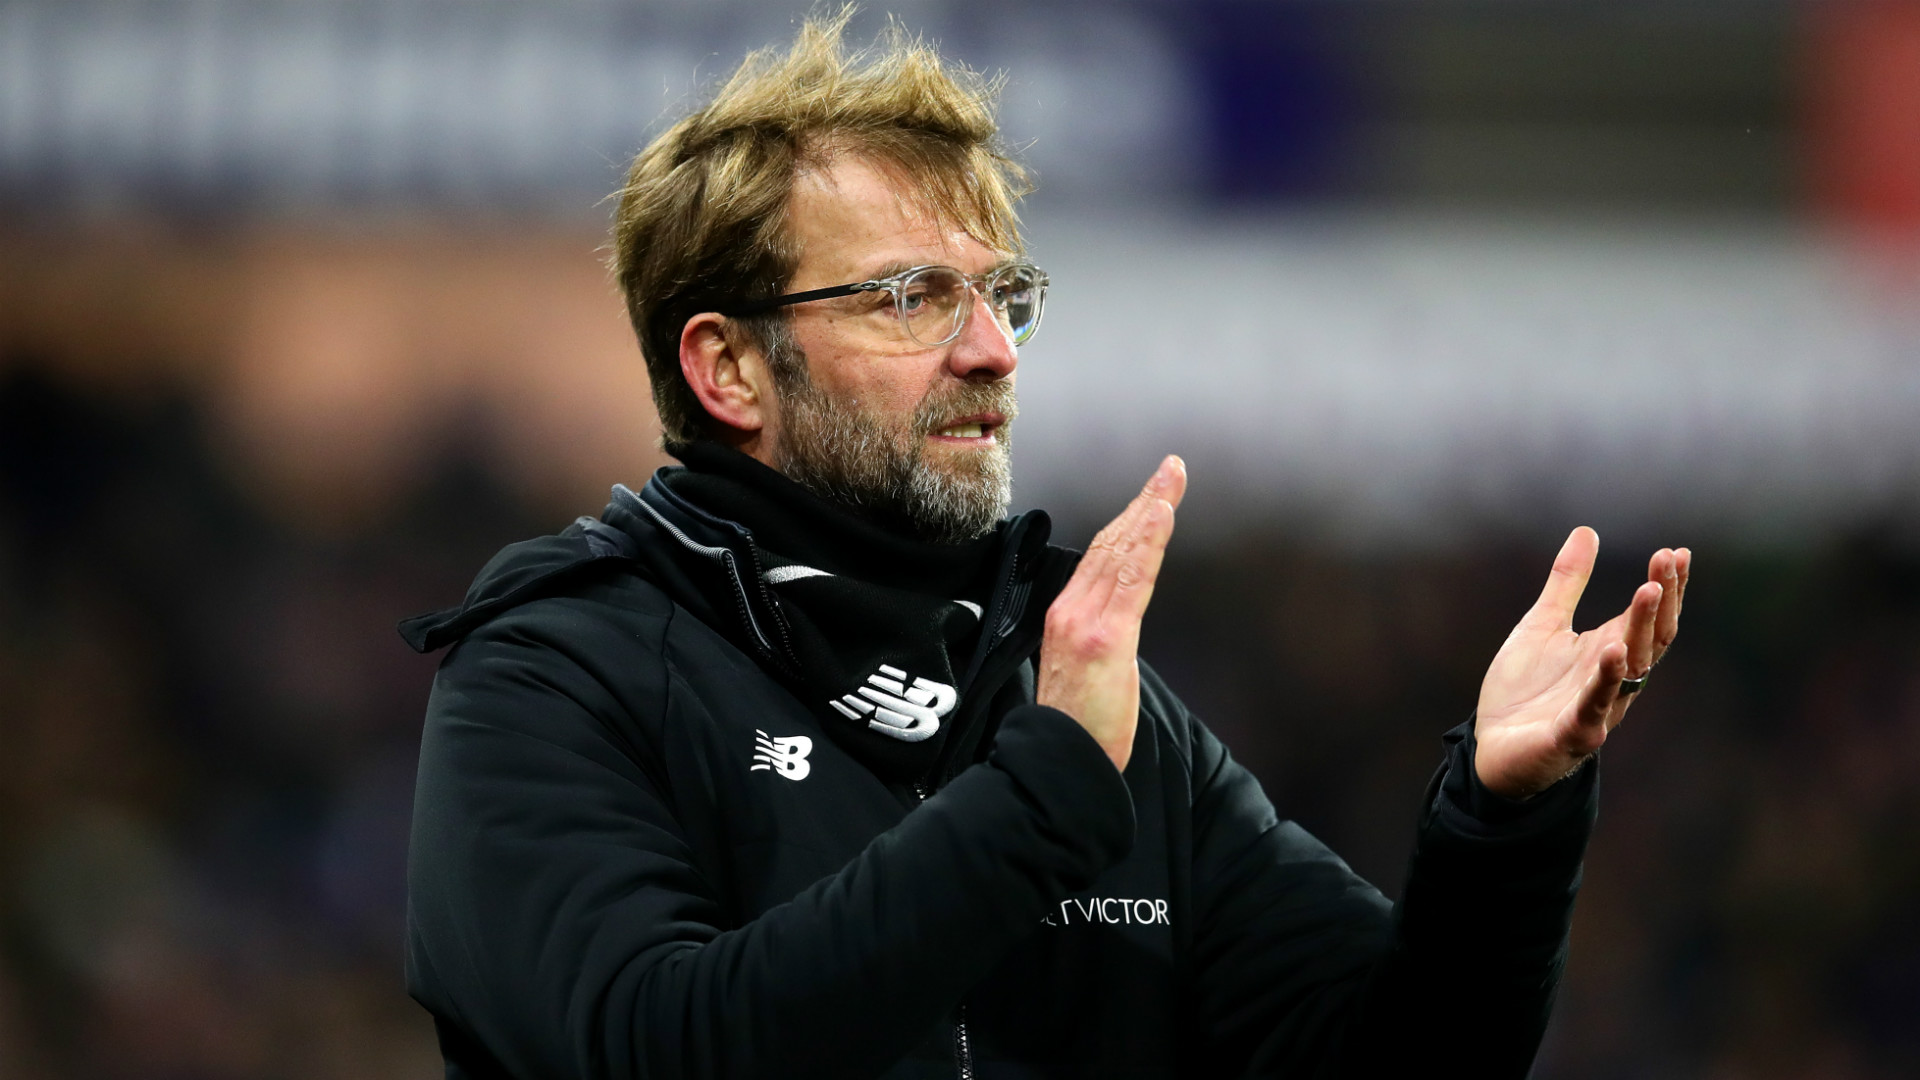 Jurgen Klopp says Liverpool had to dig deep to beat Crystal Palace, but it leaves them in a buoyant mood before facing Manchester City.